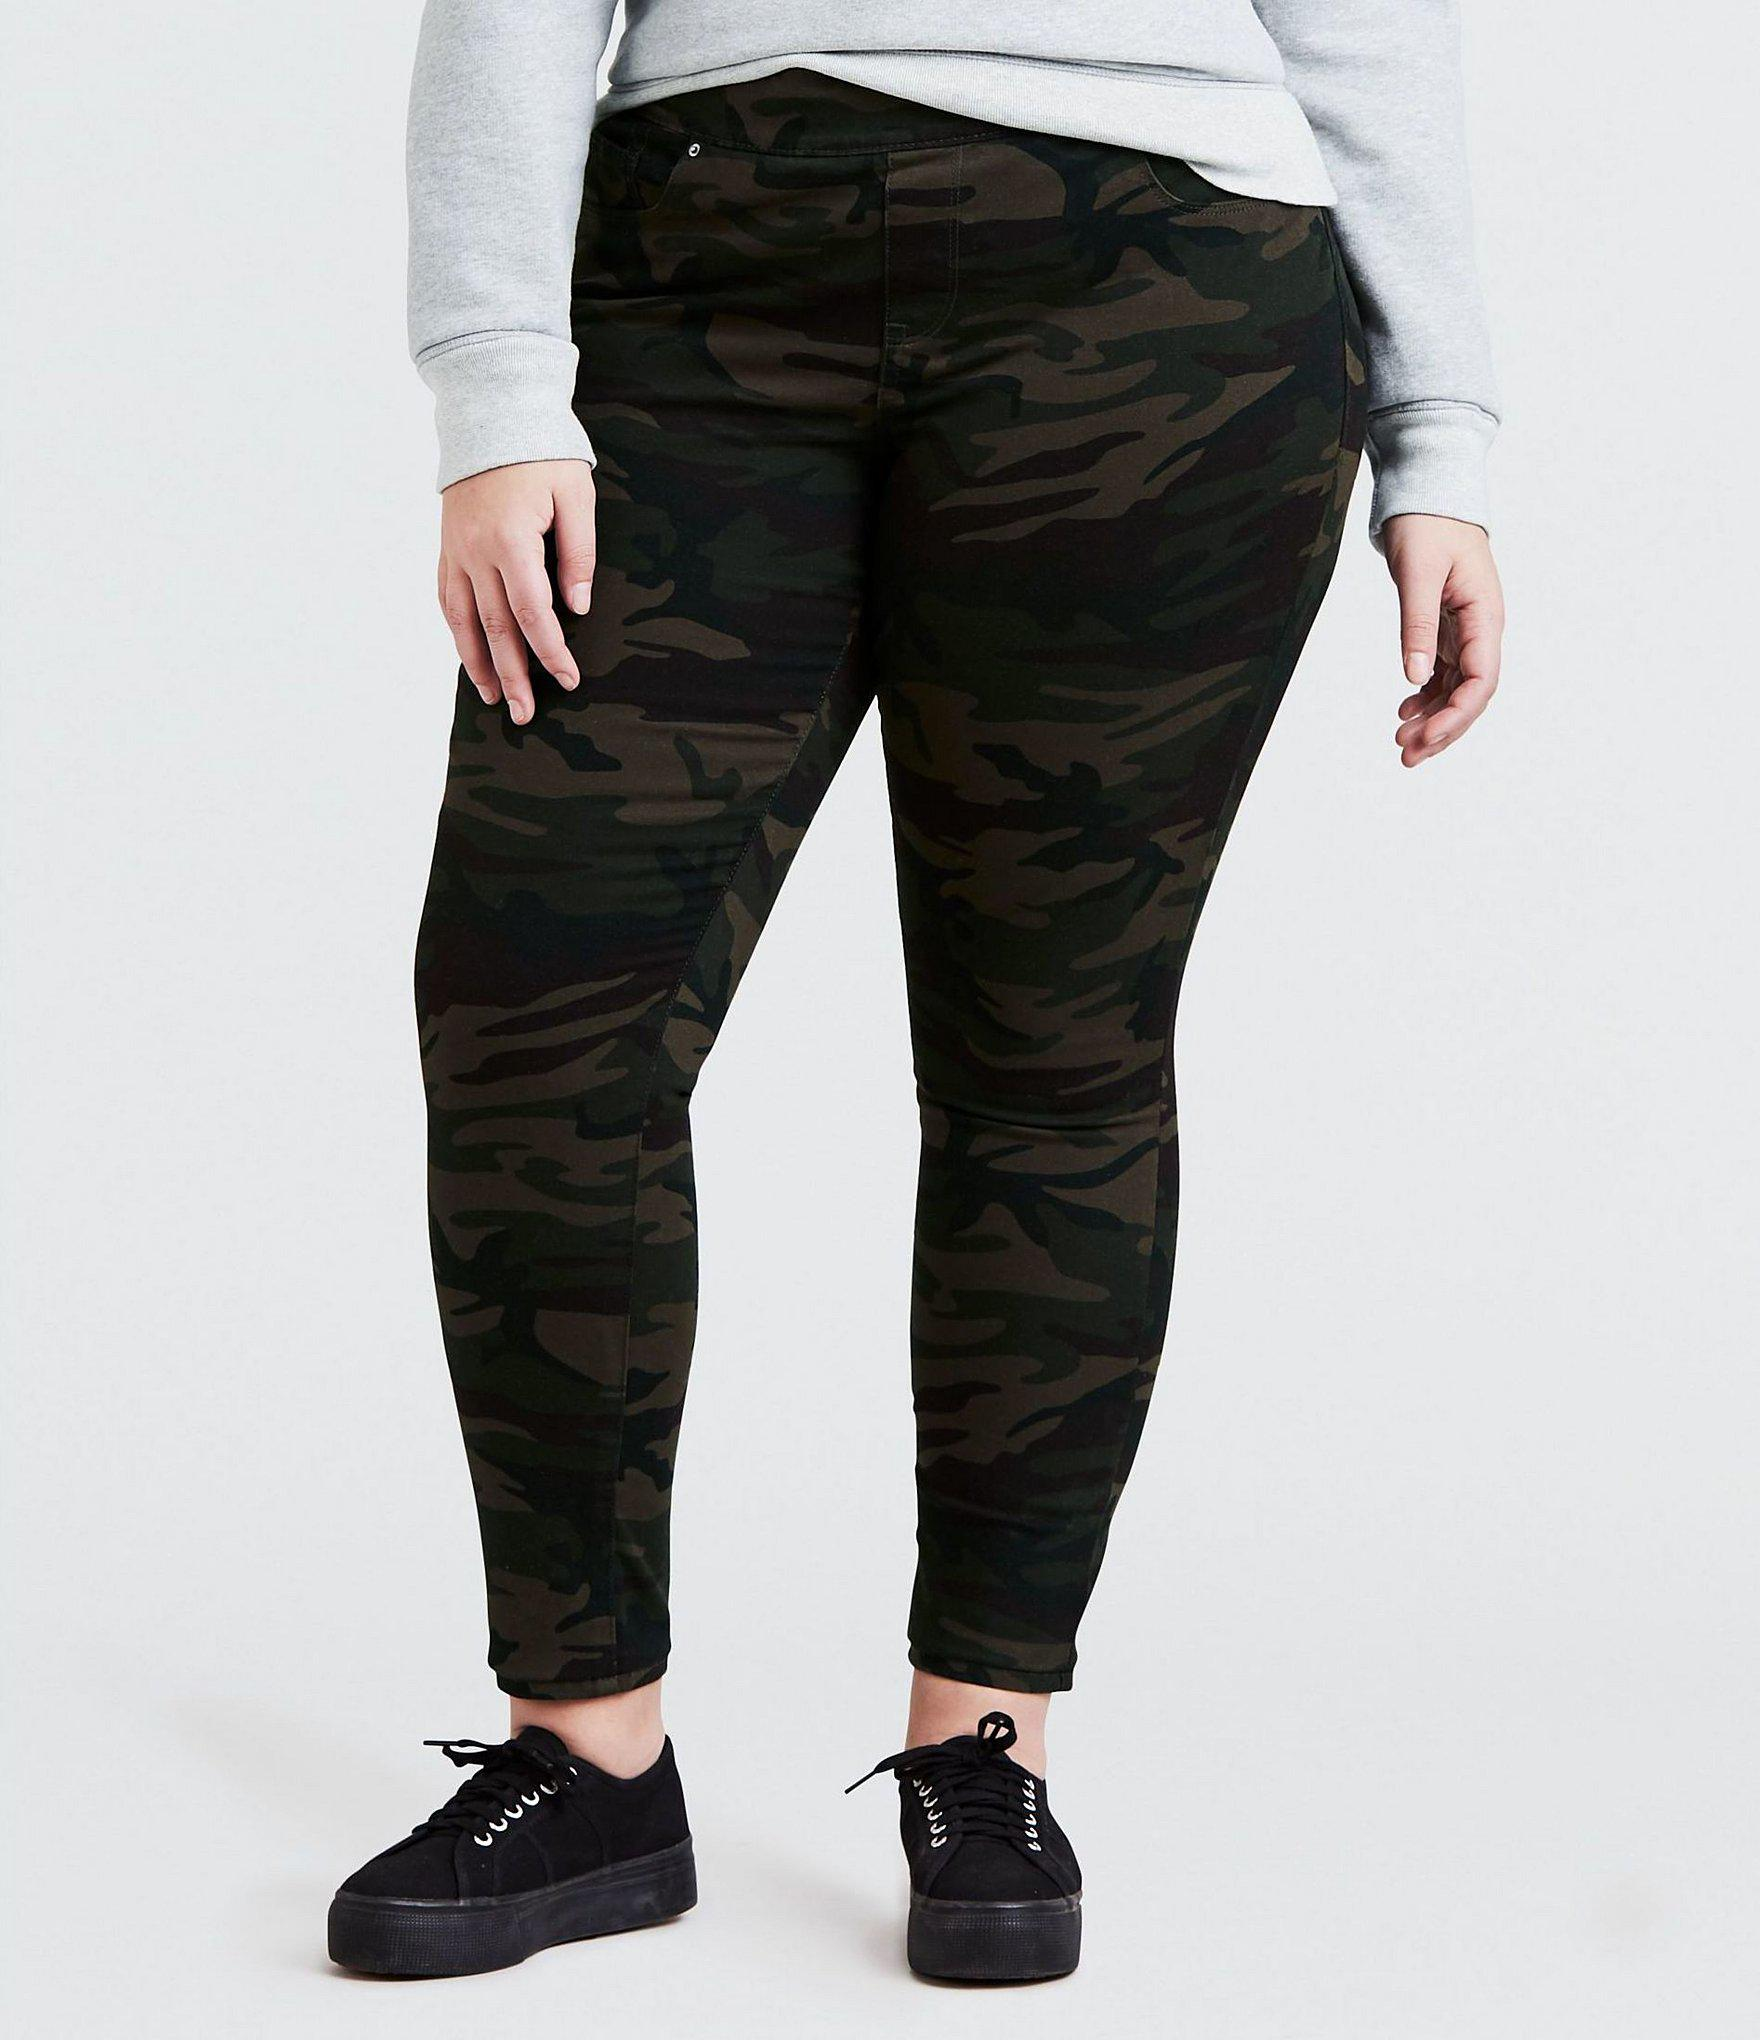 a291190ab1c Lyst - Levi S Plus Size Pull On Leggings in Black